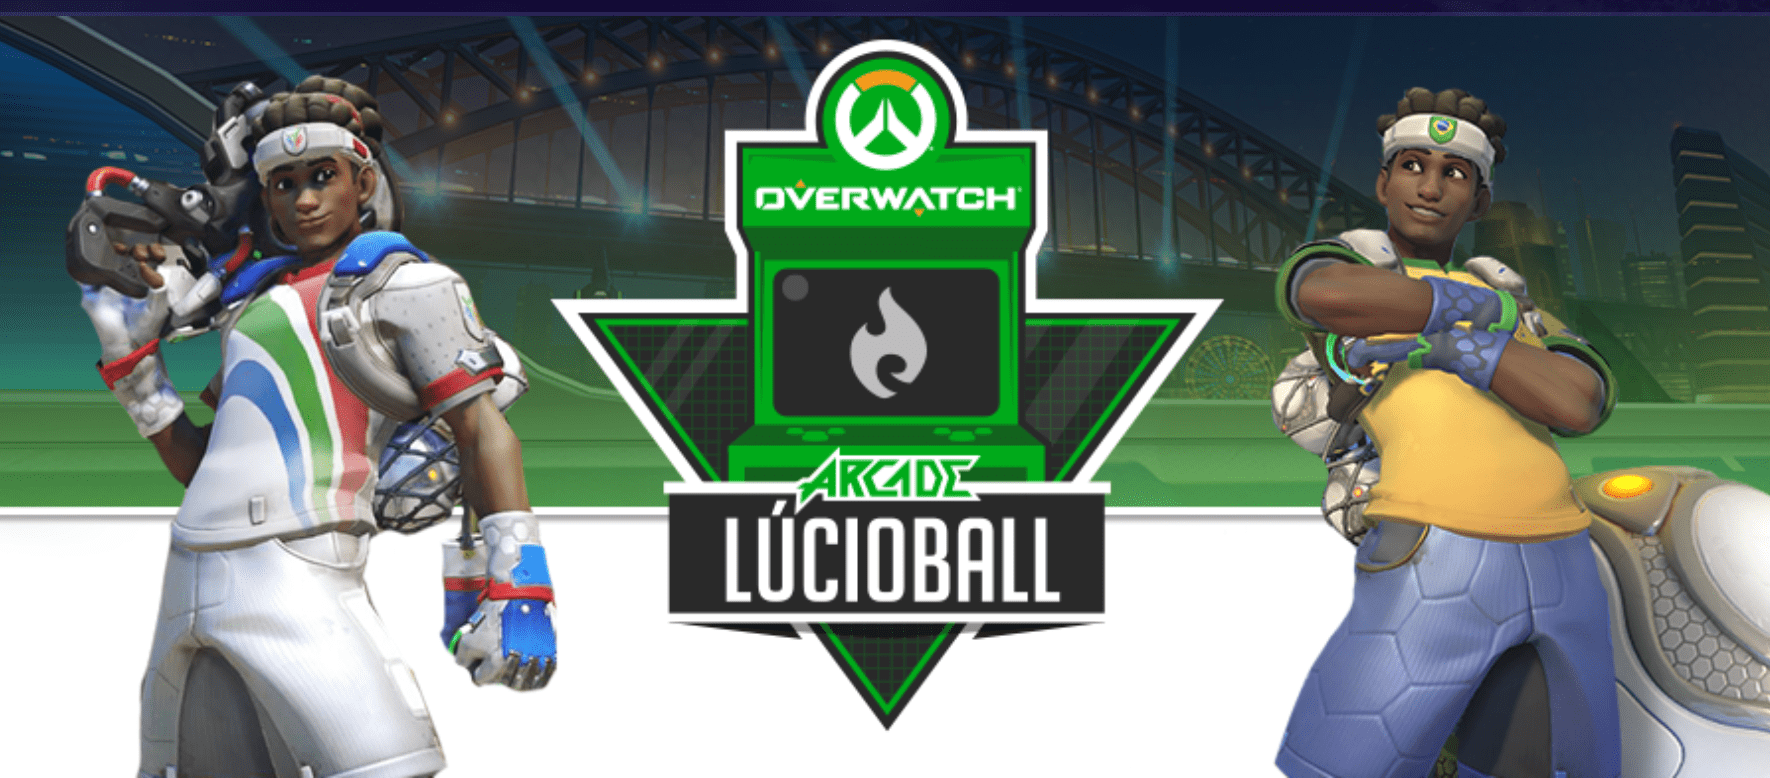 Overwatch announces Tespa Arcade: Summer Lúcioball Tournament